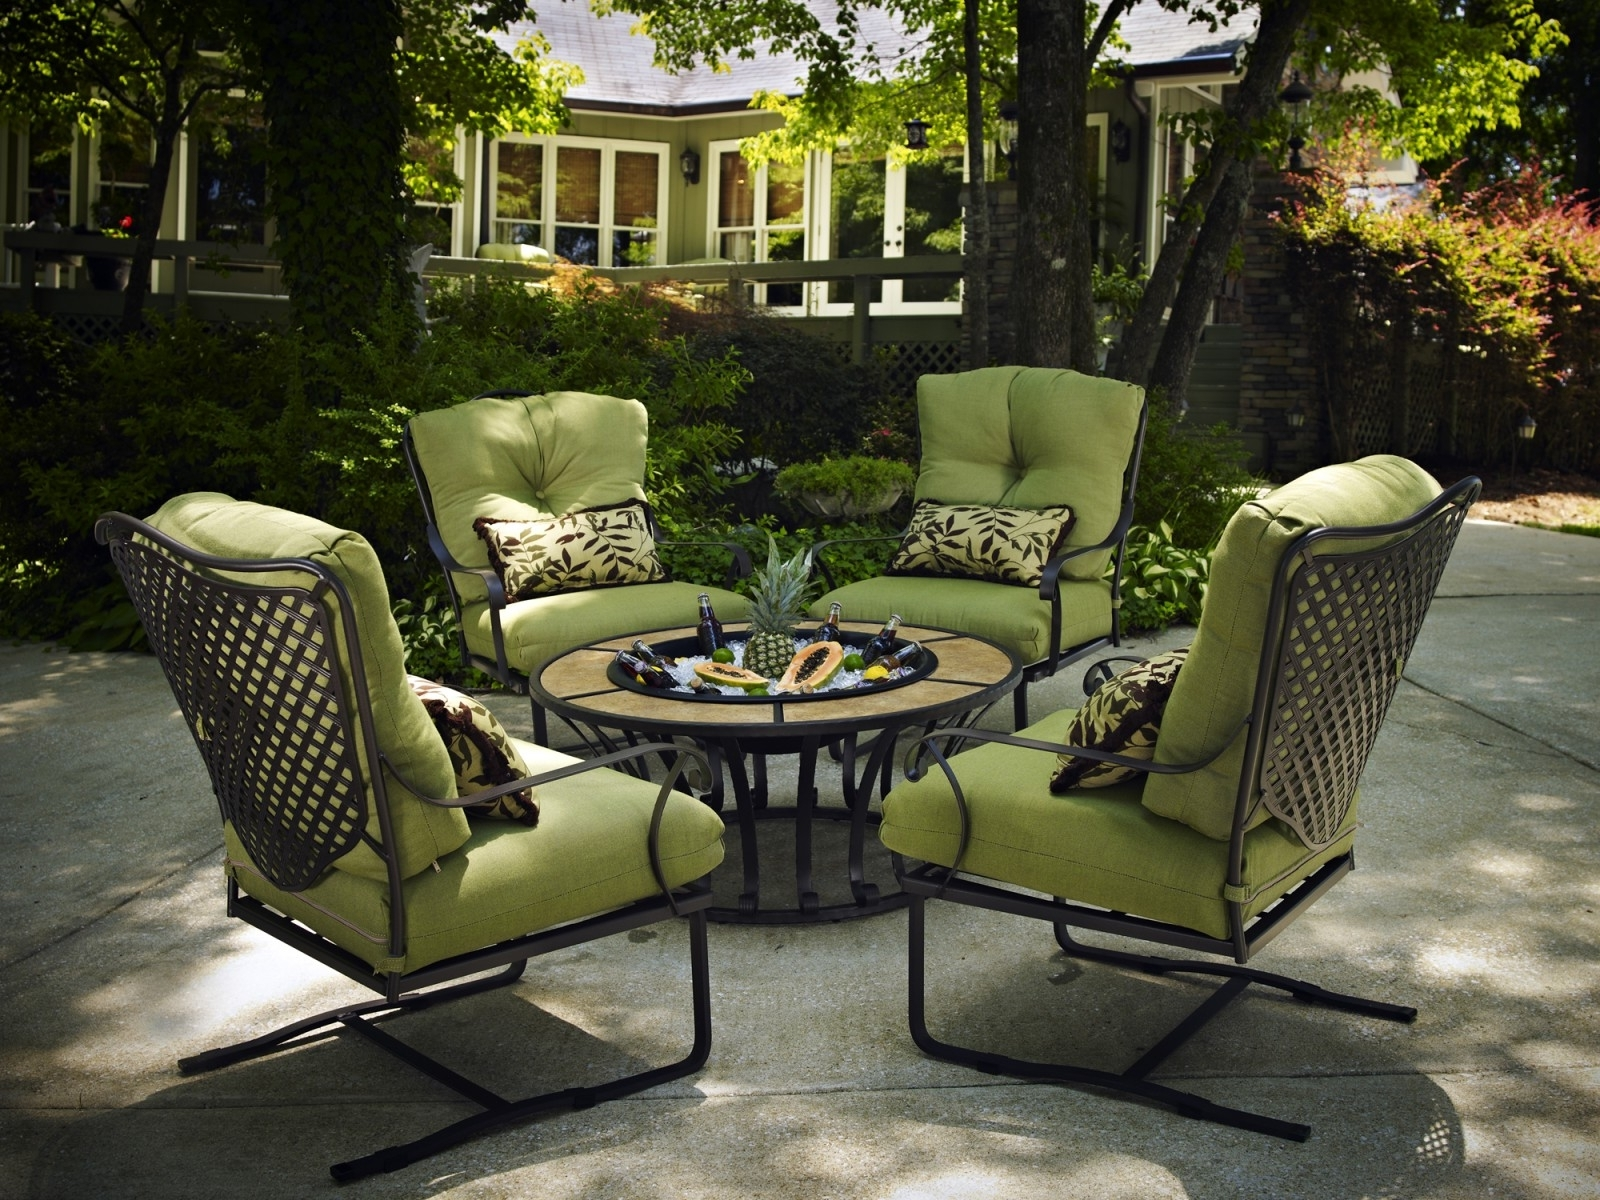 Most Recent Wrought Iron Patio Furniture Adorable Metal Outdoor Patio Furniture Within Metal Patio Conversation Sets (View 13 of 20)